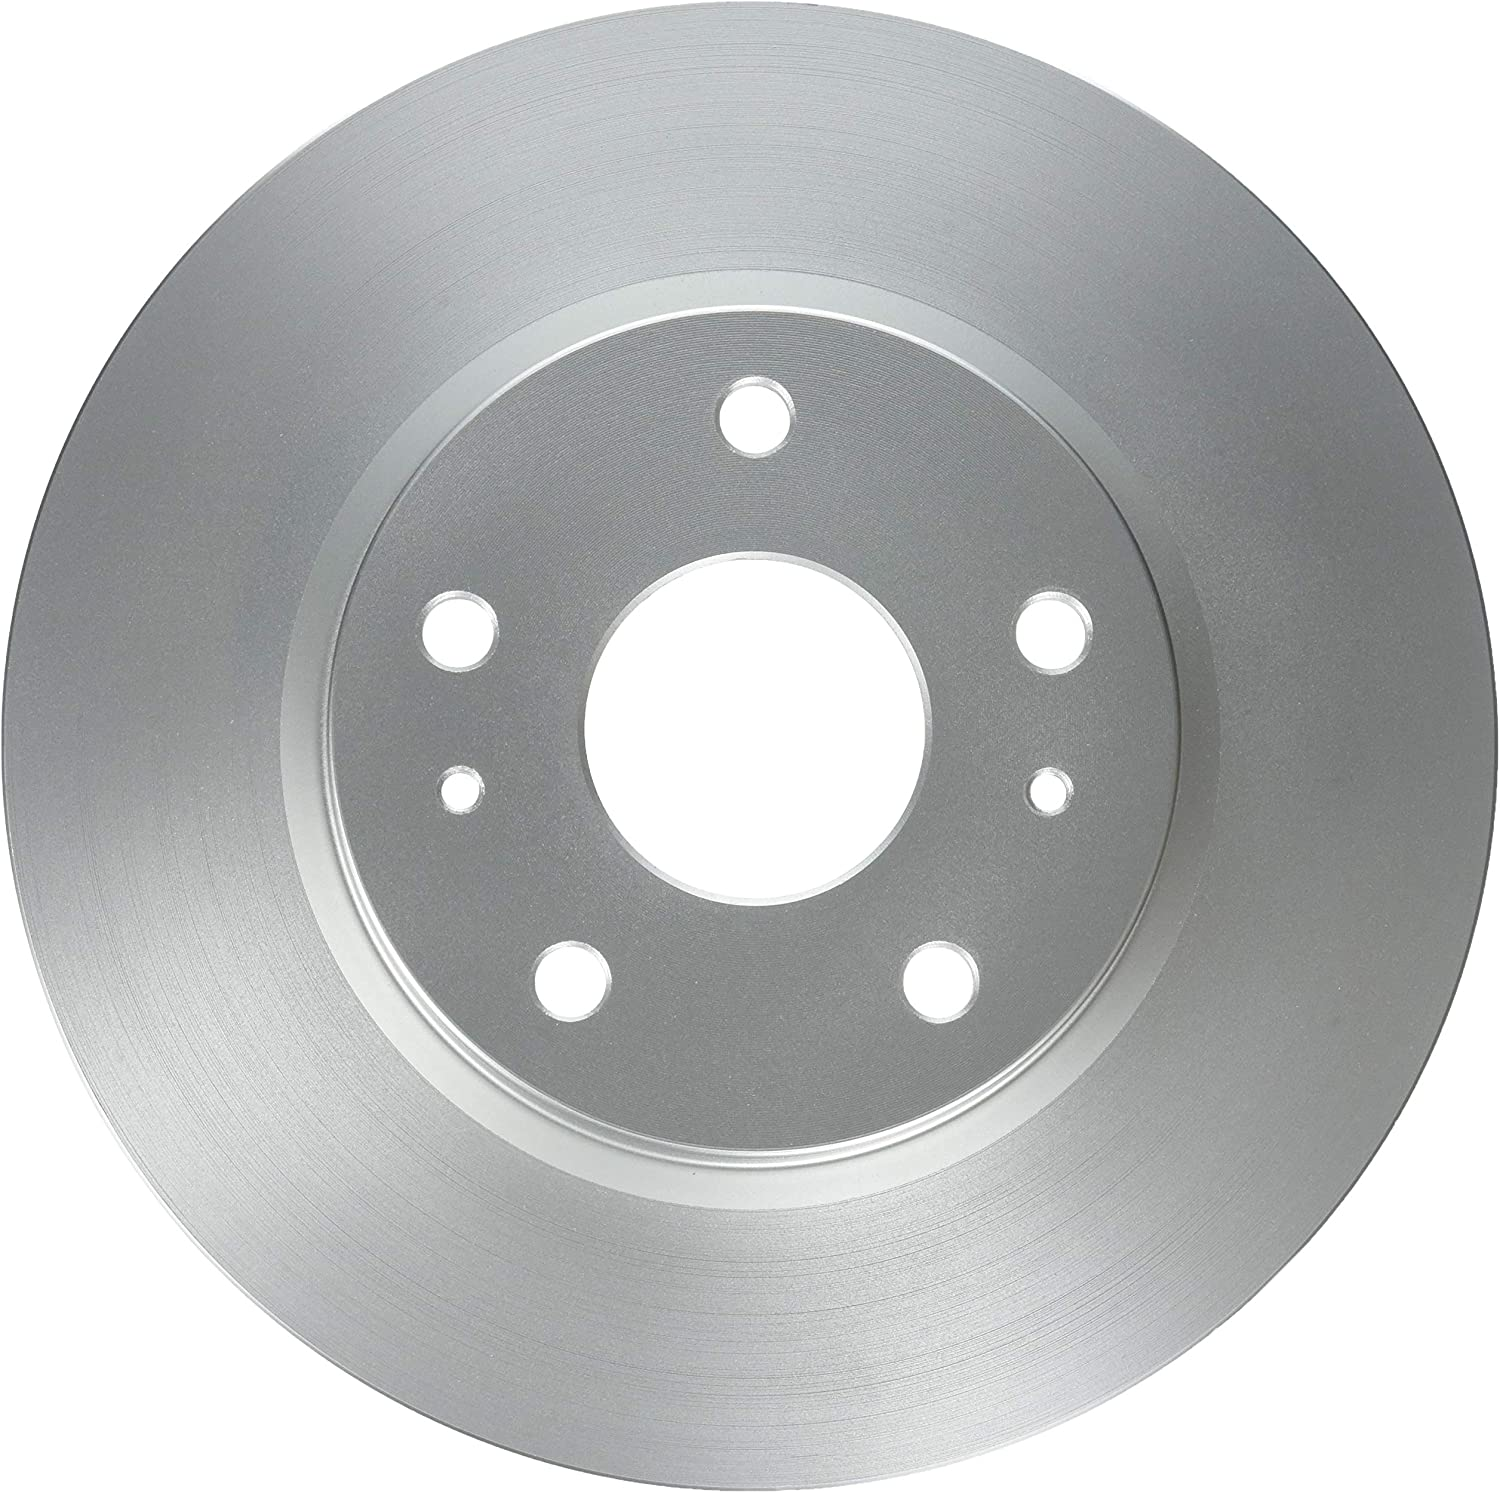 Raybestos 96061FZN Rust Prevention Technology Coated Rotor Brake